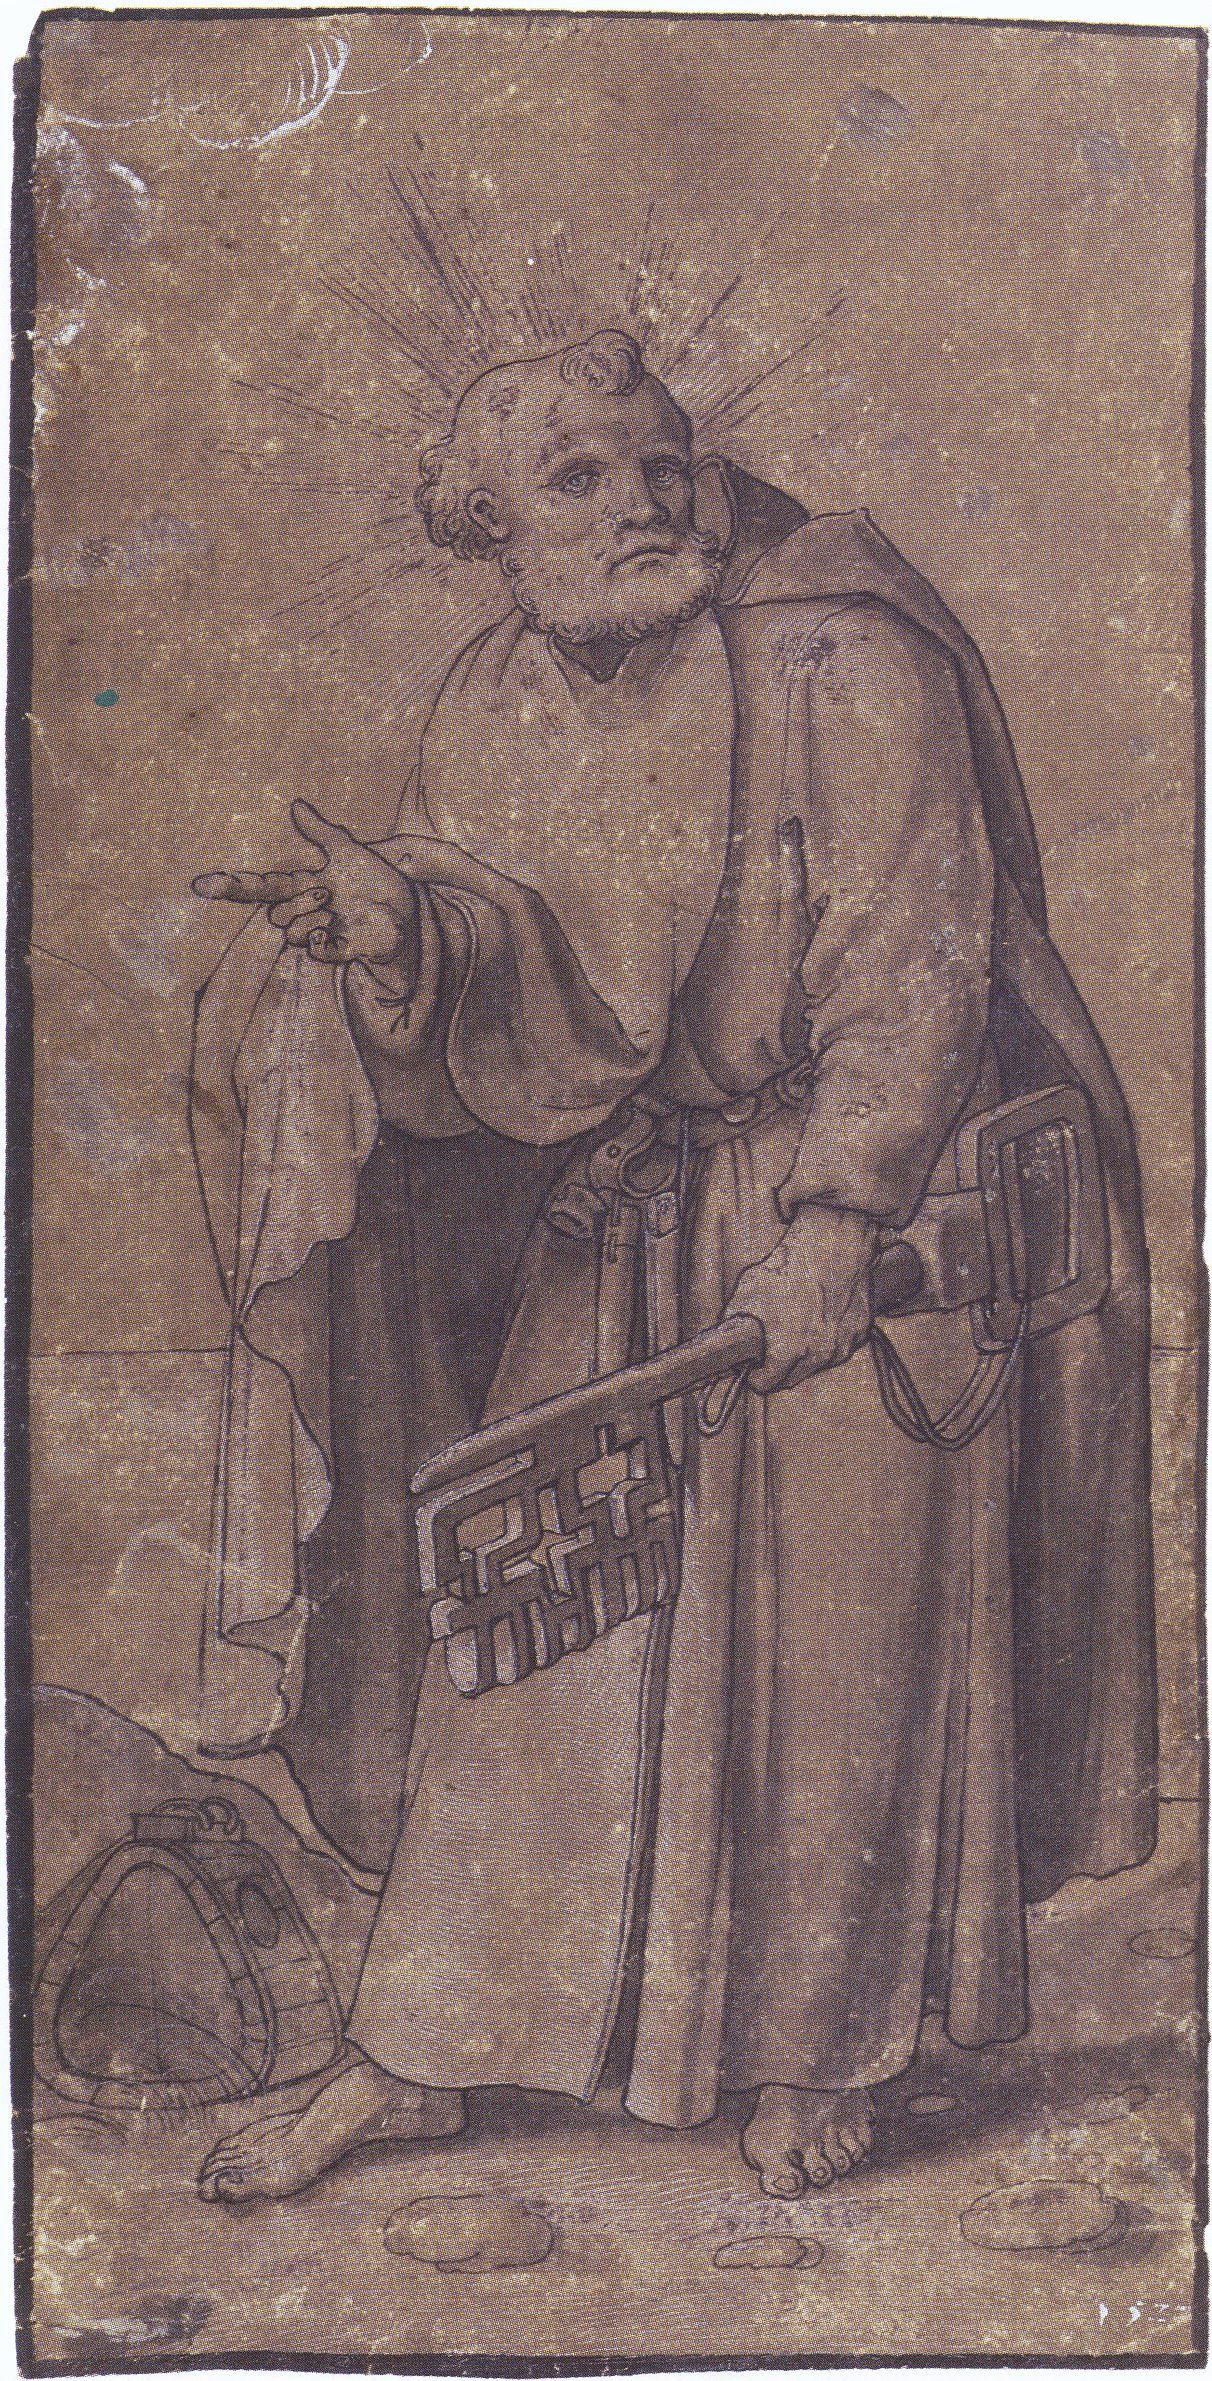 The Apostle Peter. workshop or circle of Hans Holbein the Younger. 1527